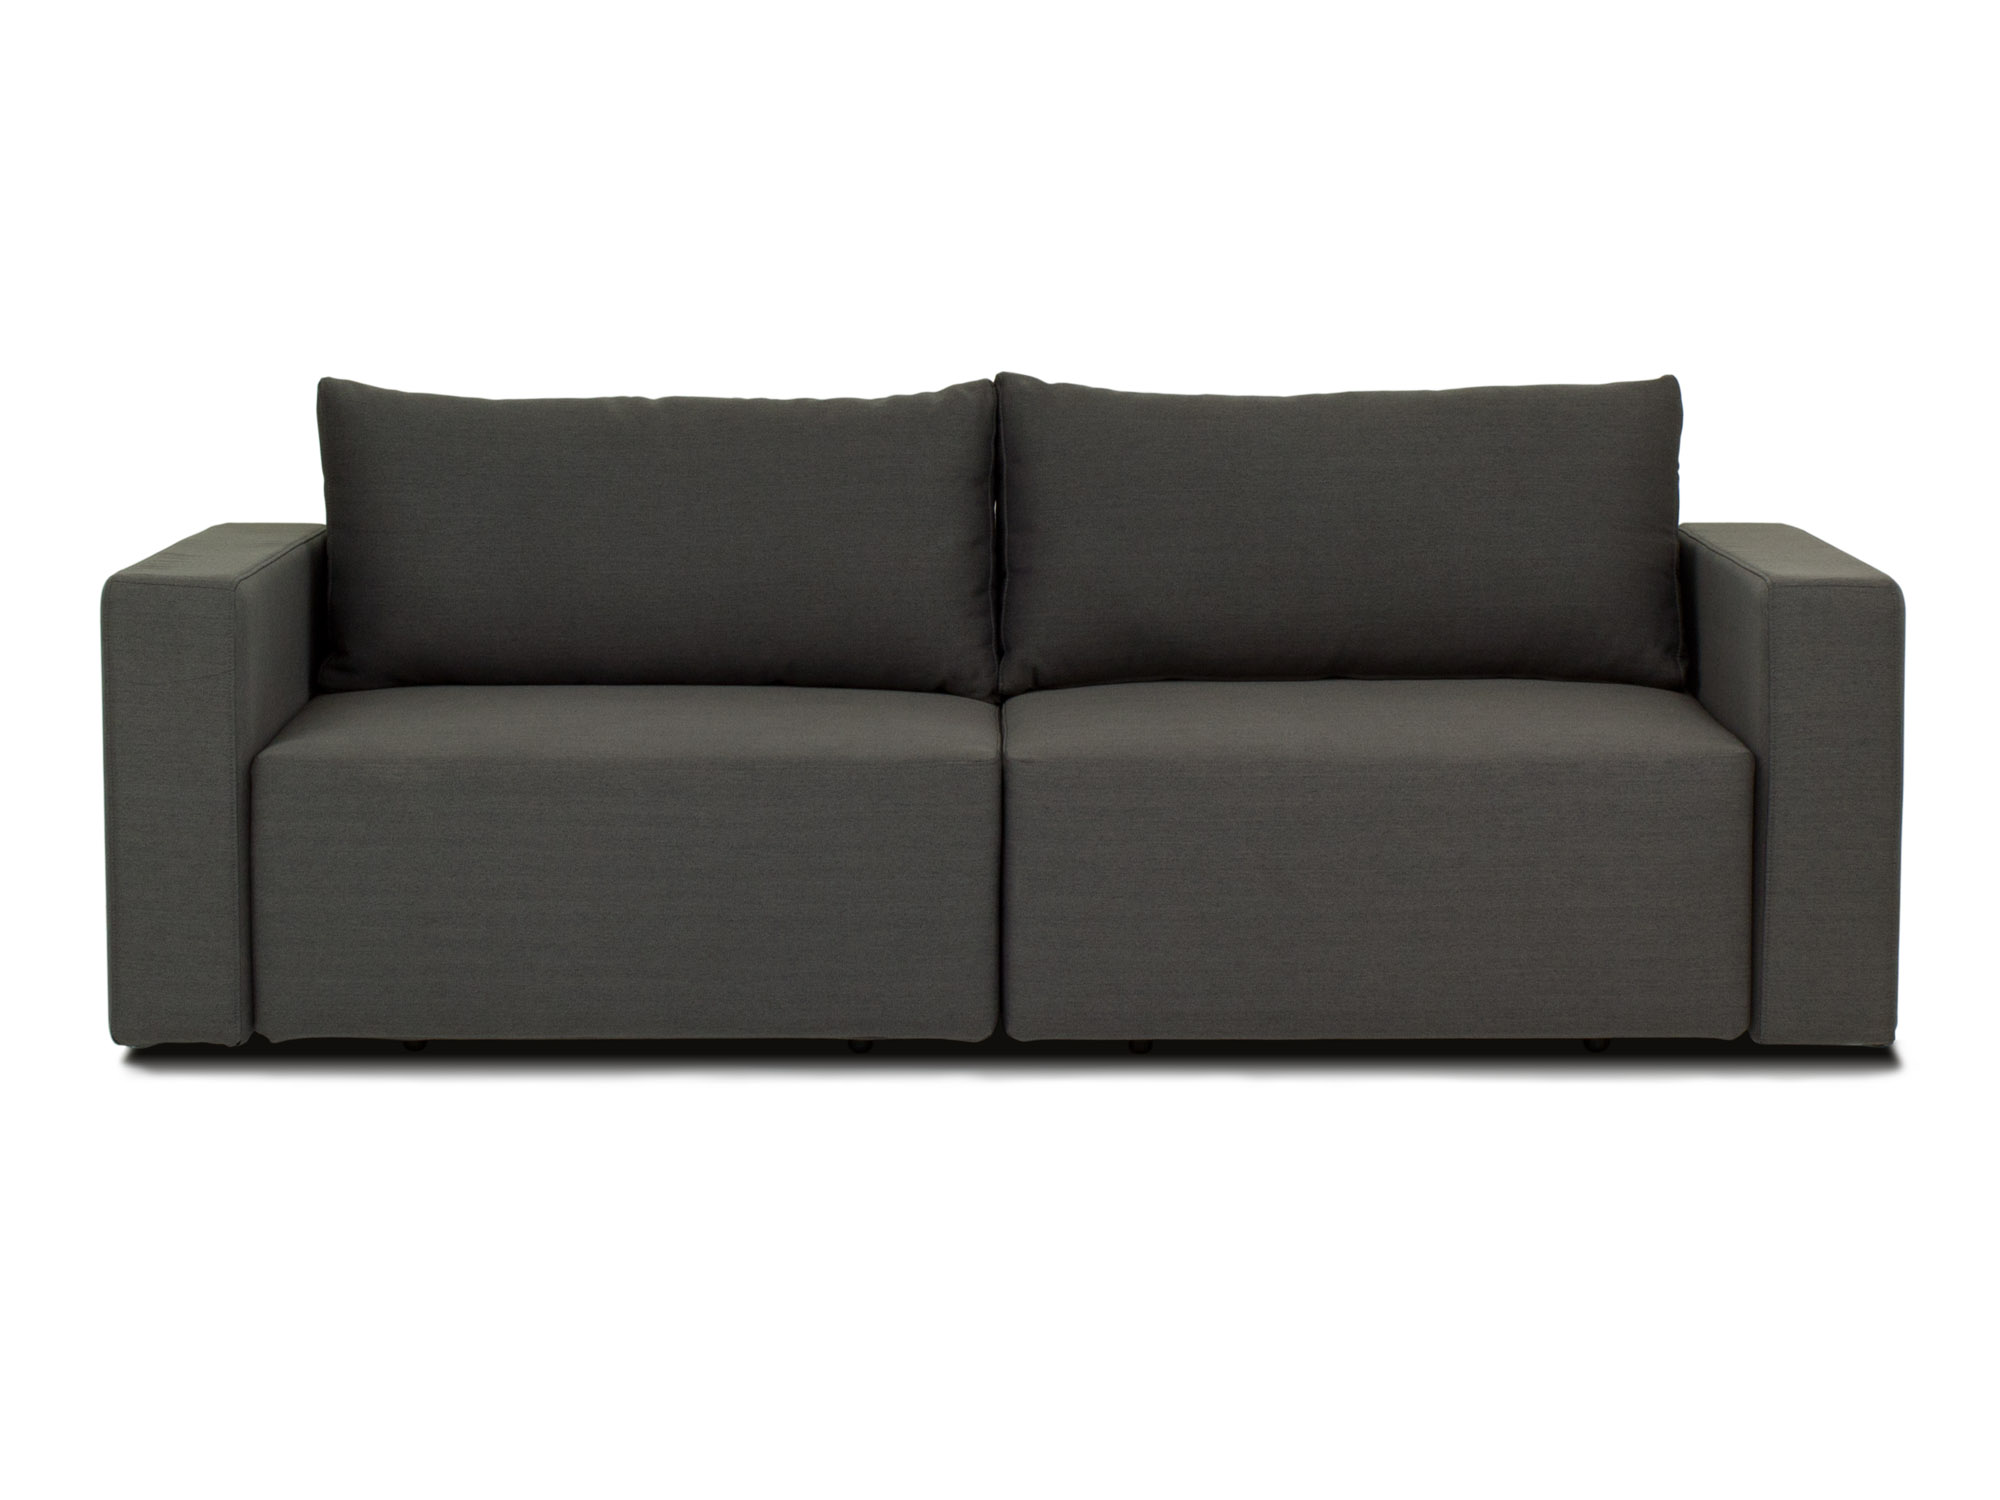 Cheap Pull Out Couch | Moheda Sofa Bed | Ikea Sofabed